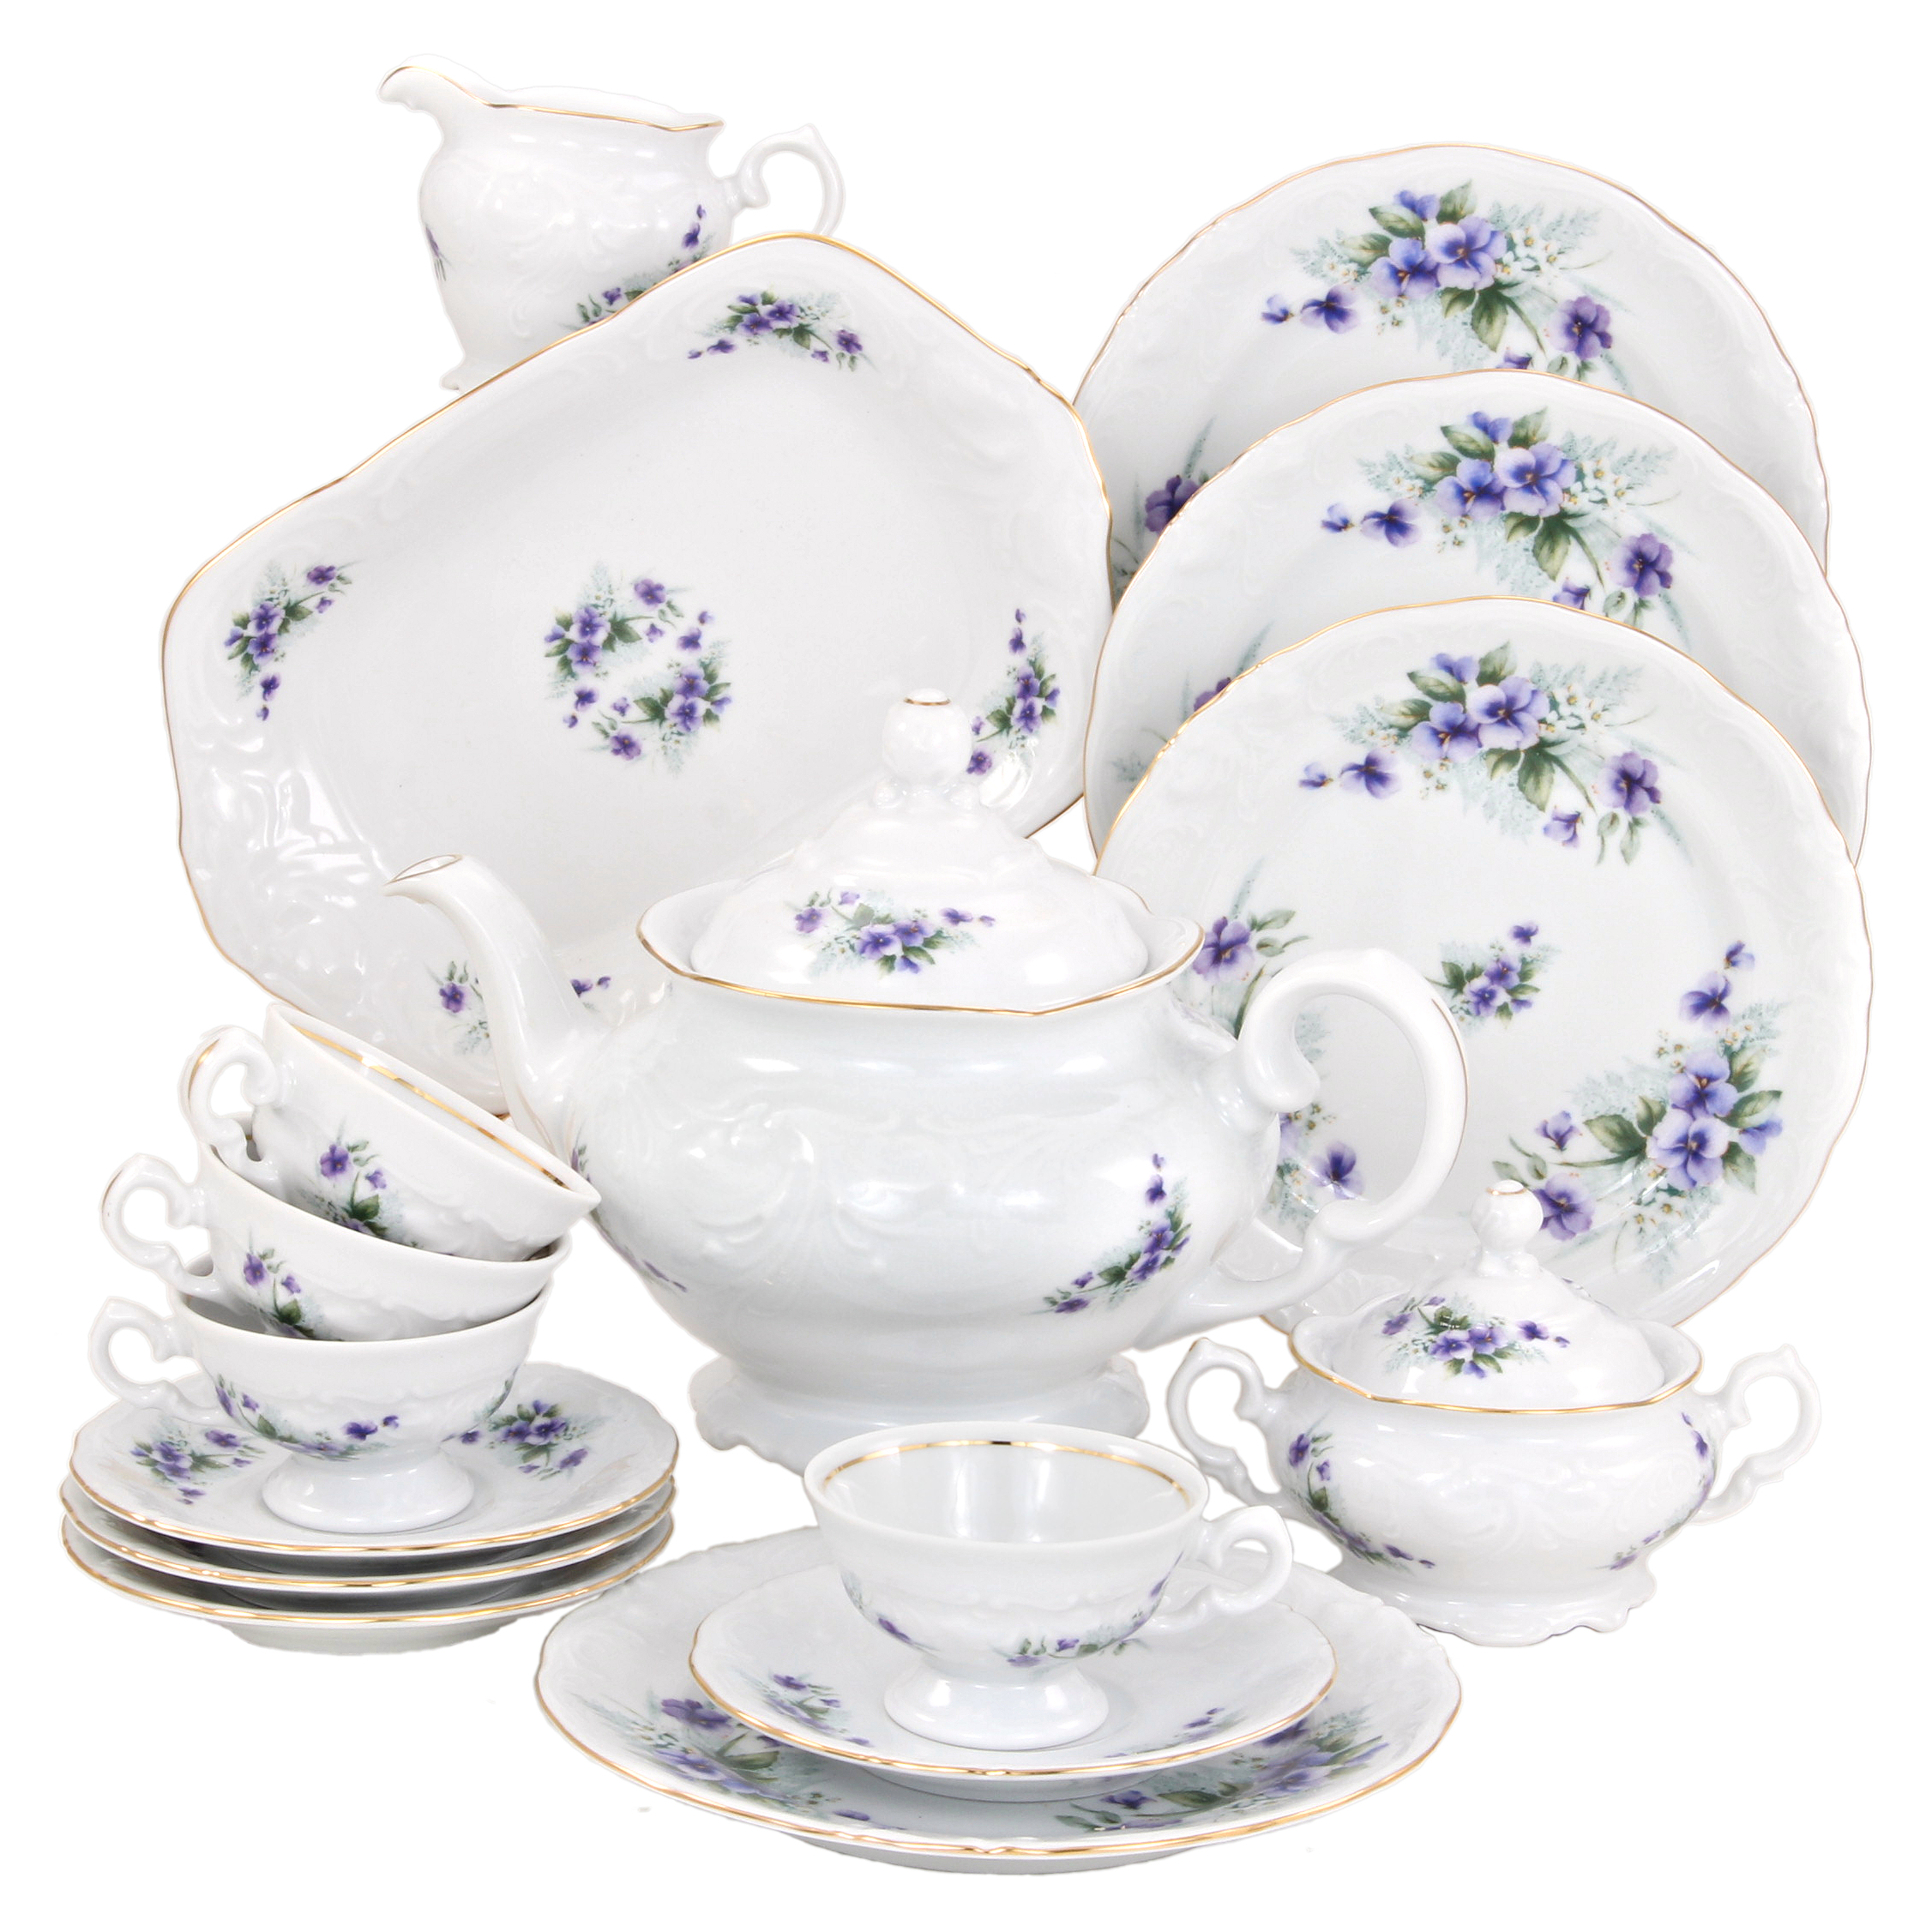 Violet Fine China Tea Set for Children